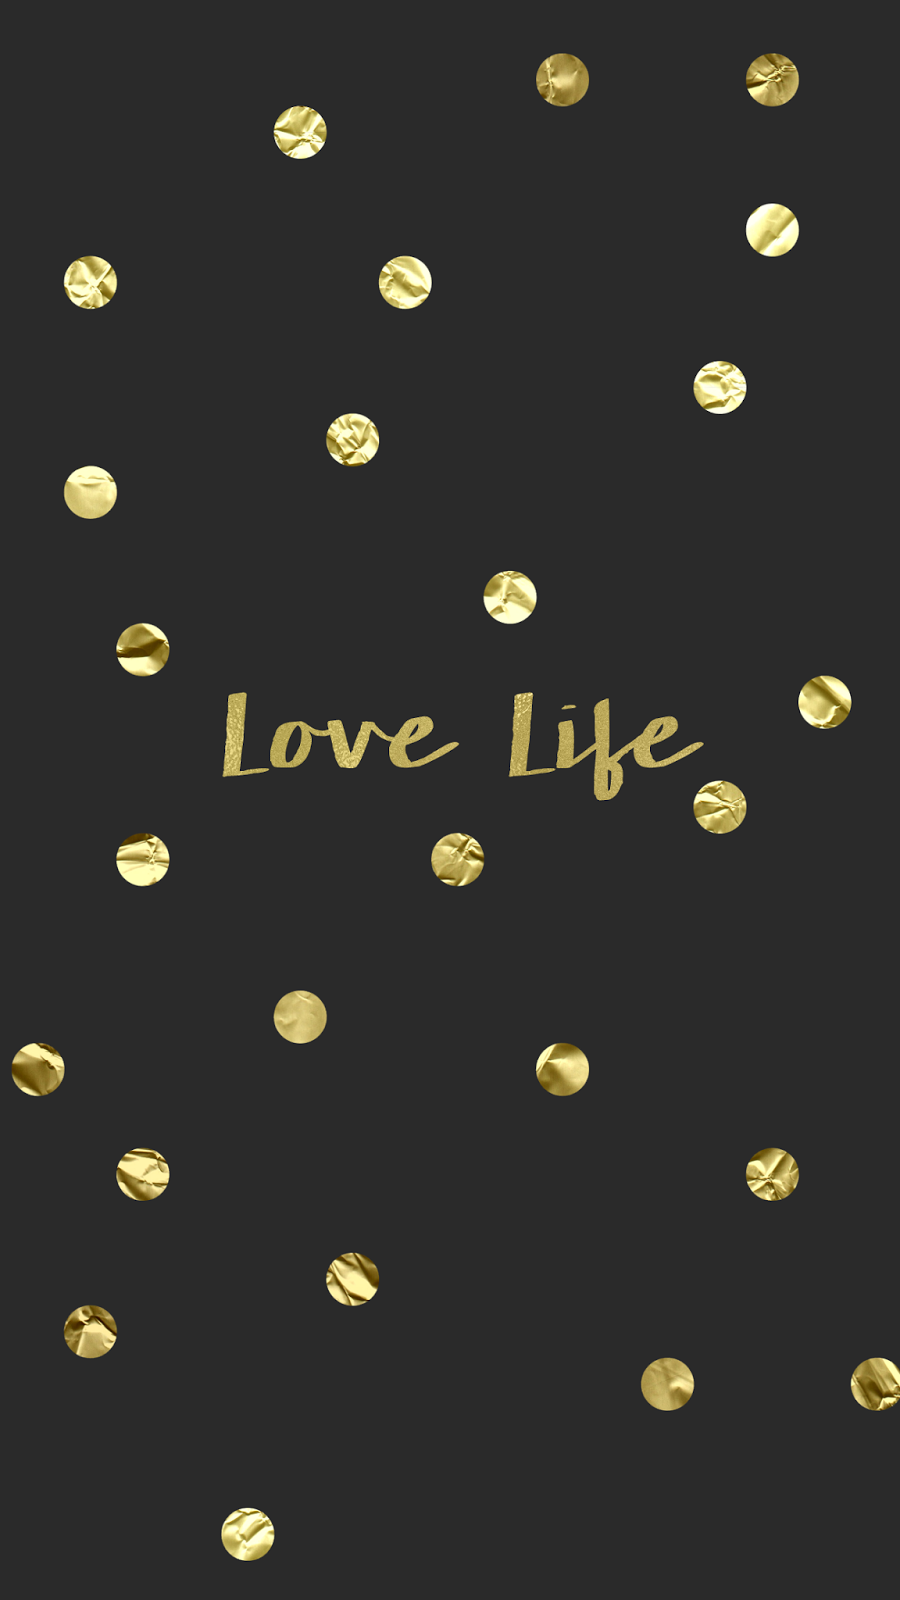 Wallpaper Background Hd Iphone Gold Confetti Black Love Life